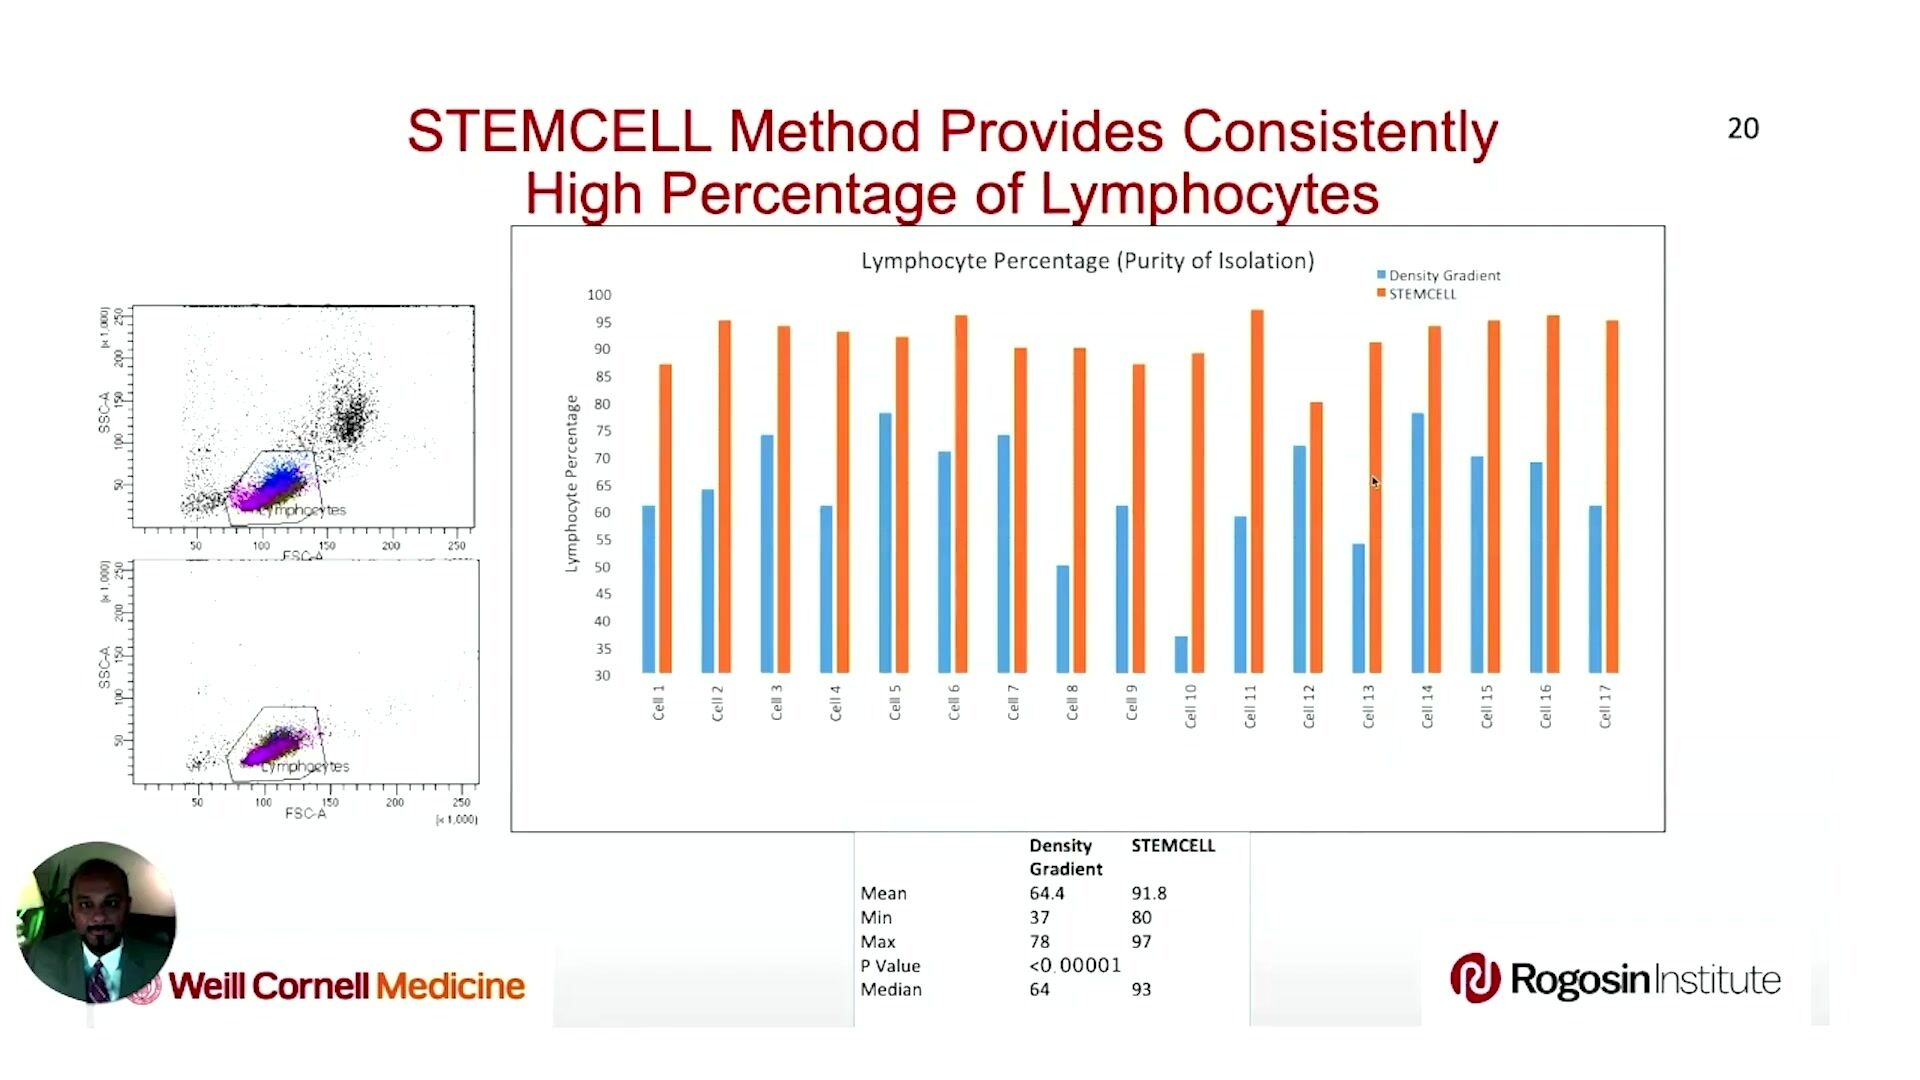 Implementation of an Immunomagnetic Human Lymphocyte Isolation Procedure in an HLA Laboratory for Flow Cytometry Crossmatch Assay